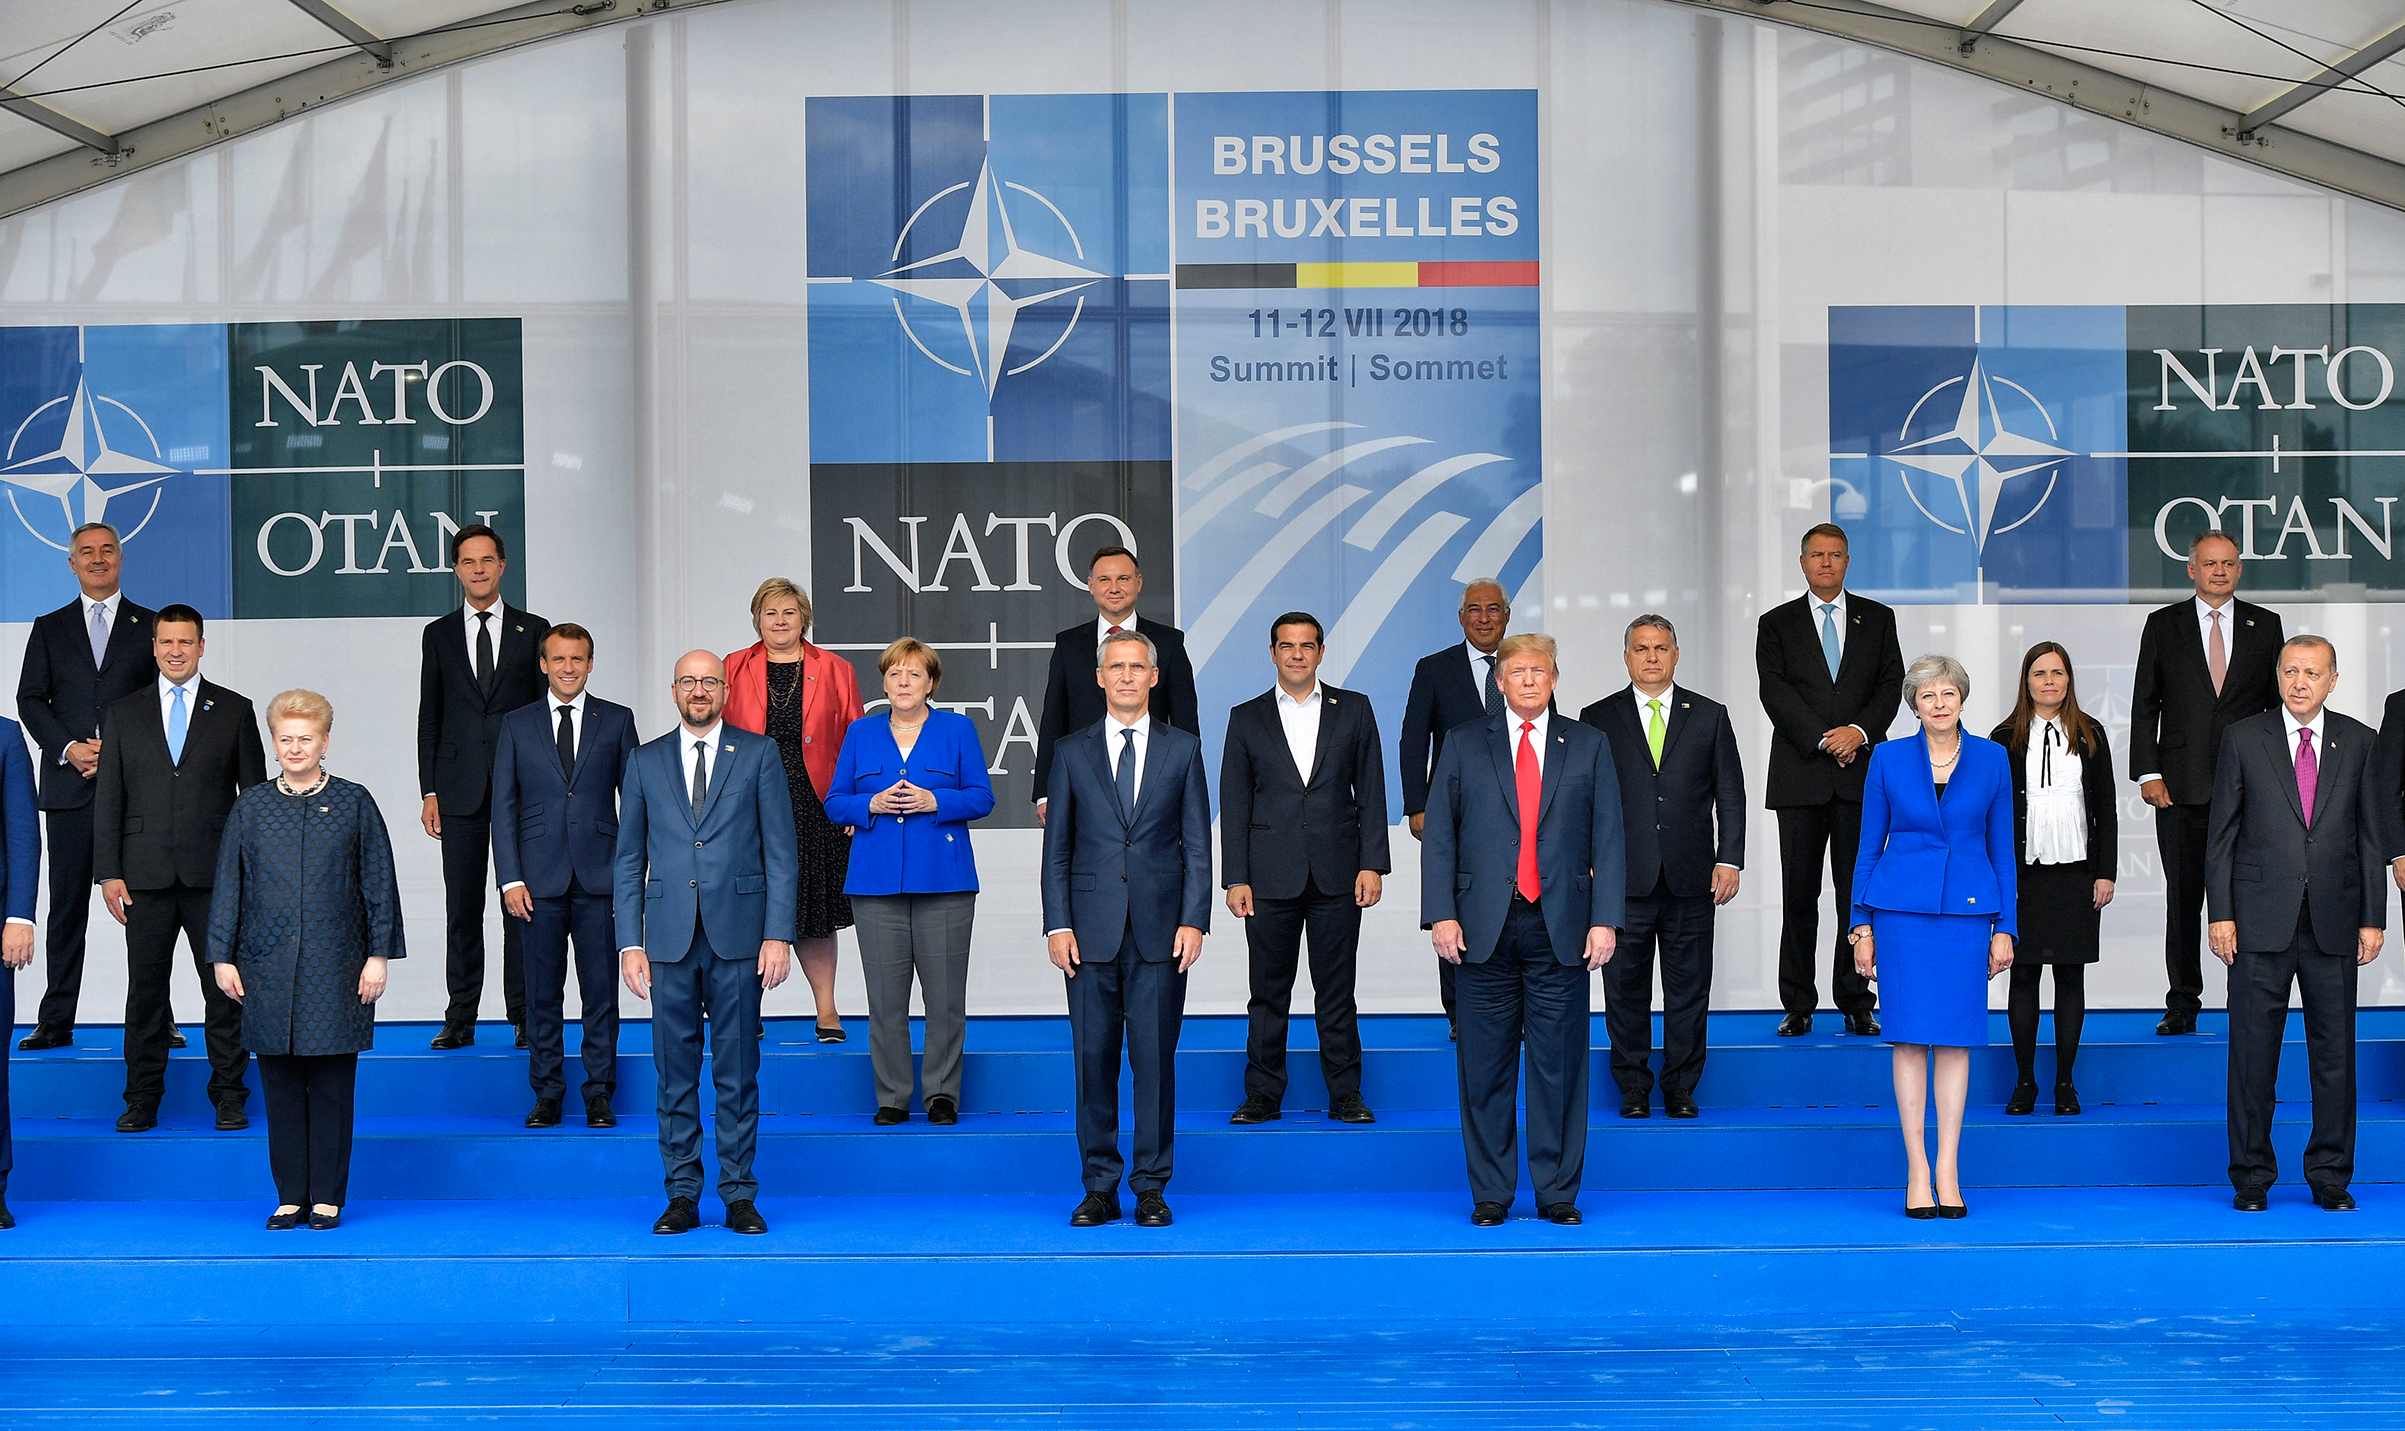 Leaders of the NATO member nations pose together at the Brussels summit in July